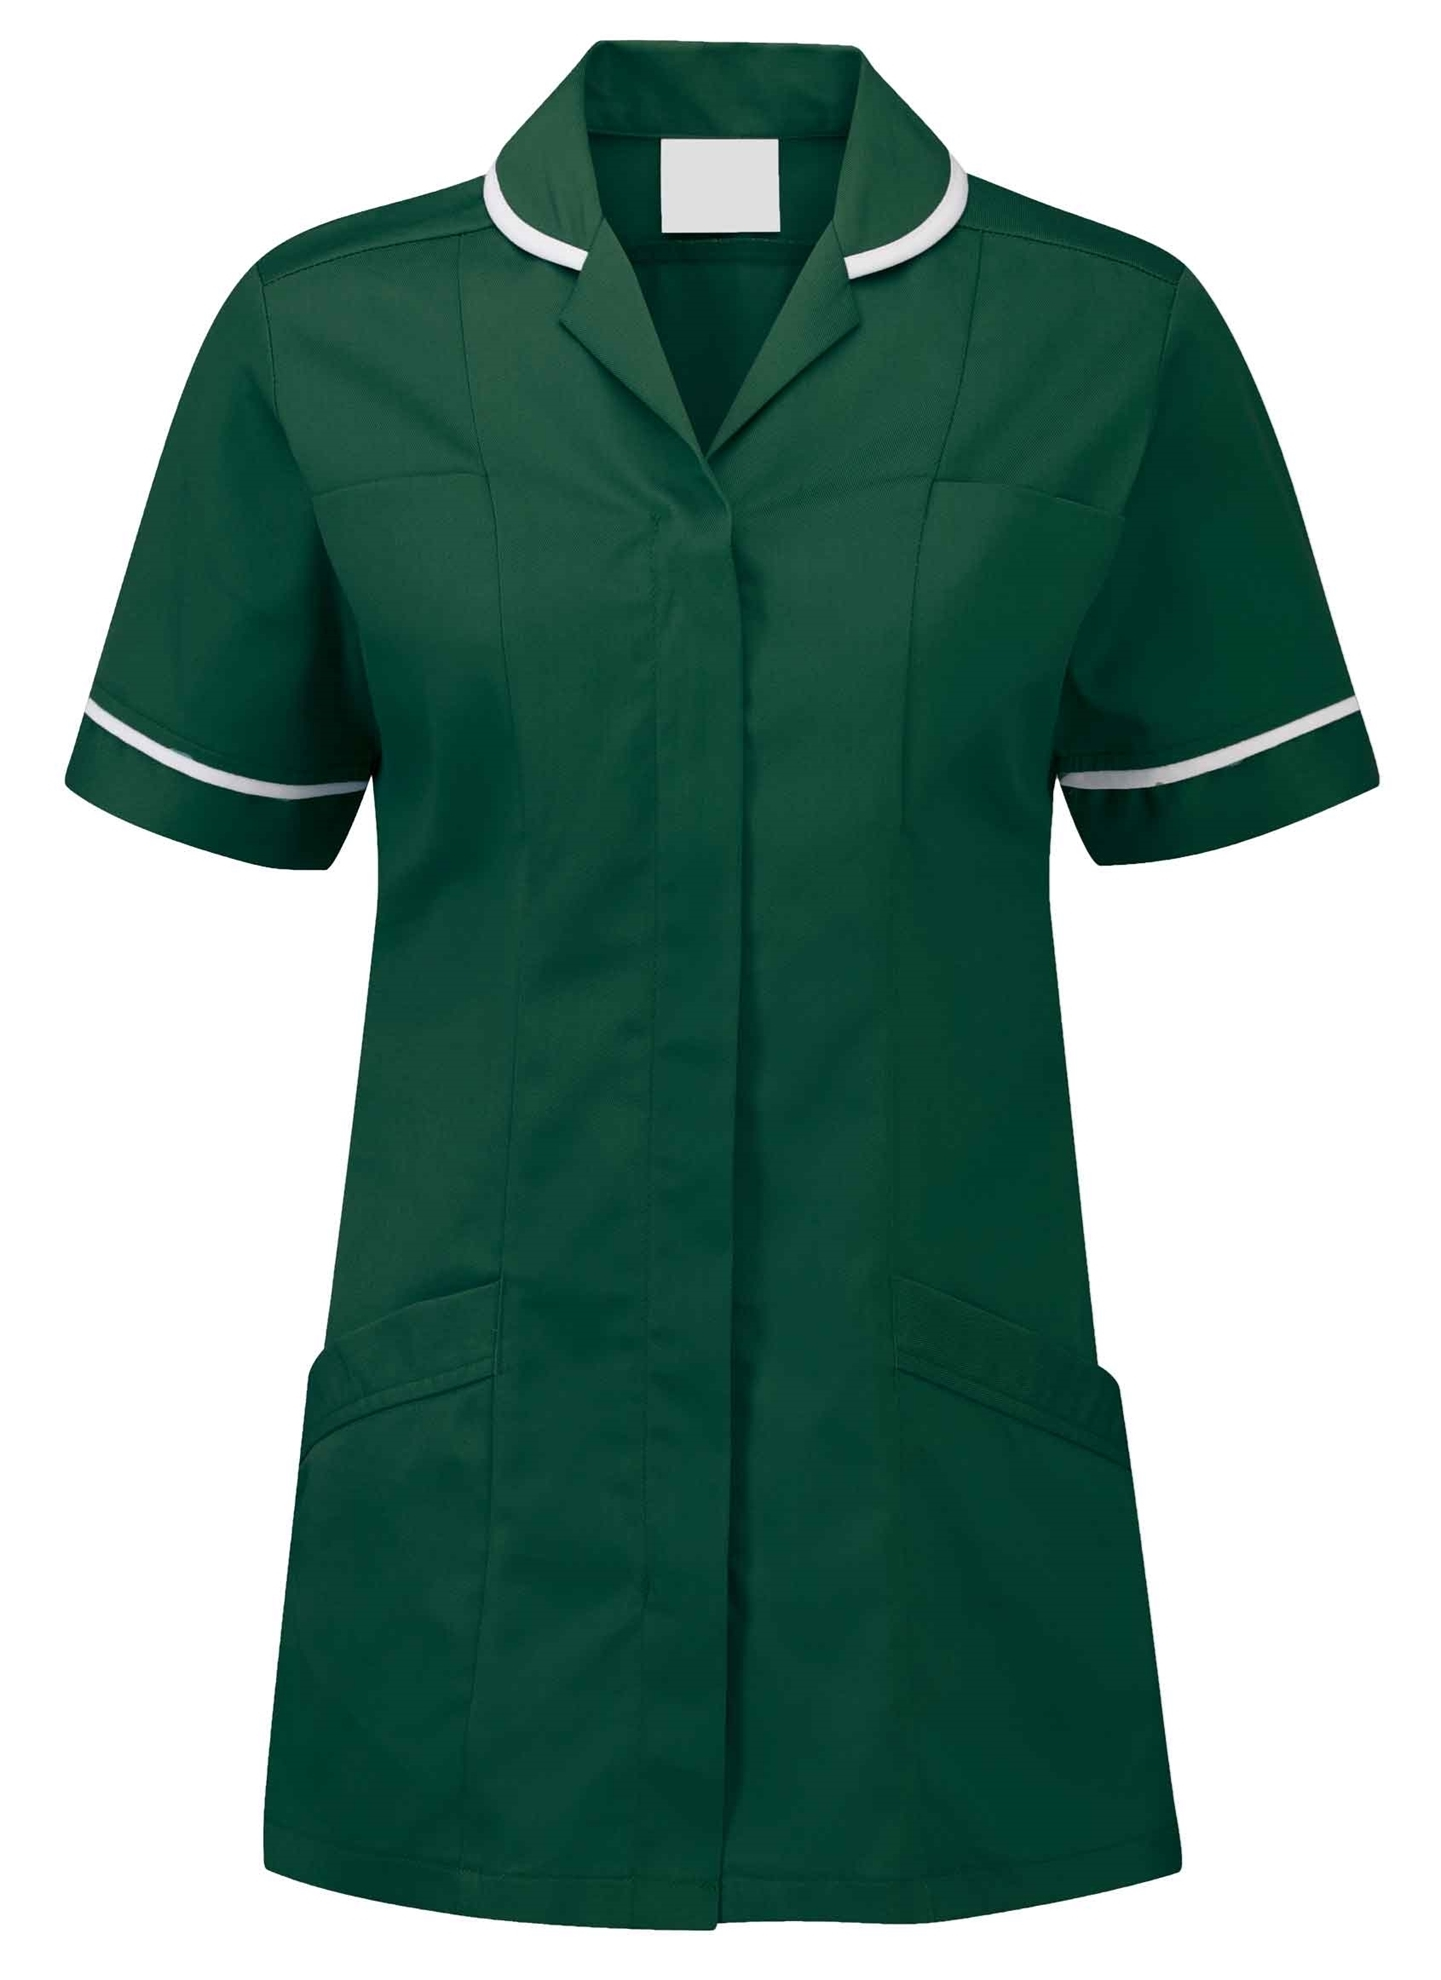 Picture of Lightweight Tunic - Bottle Green/White